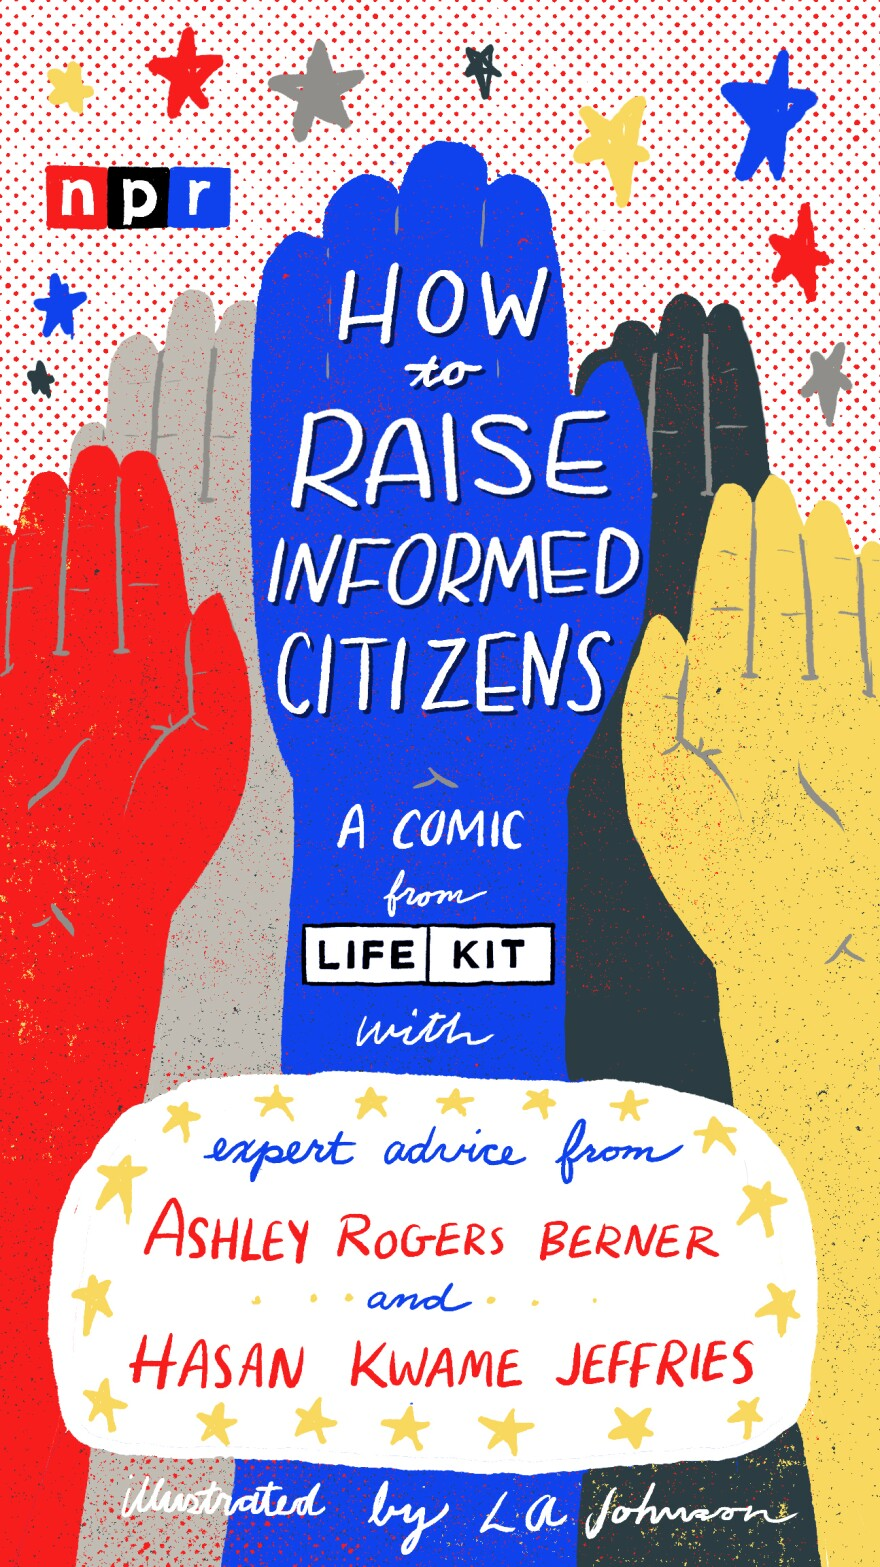 Title slide: How To Raise Informed Citizens, a comic by LA Johnson with expert advice from Ashley Rogers Berner and Hasan Kwame Jeffries.